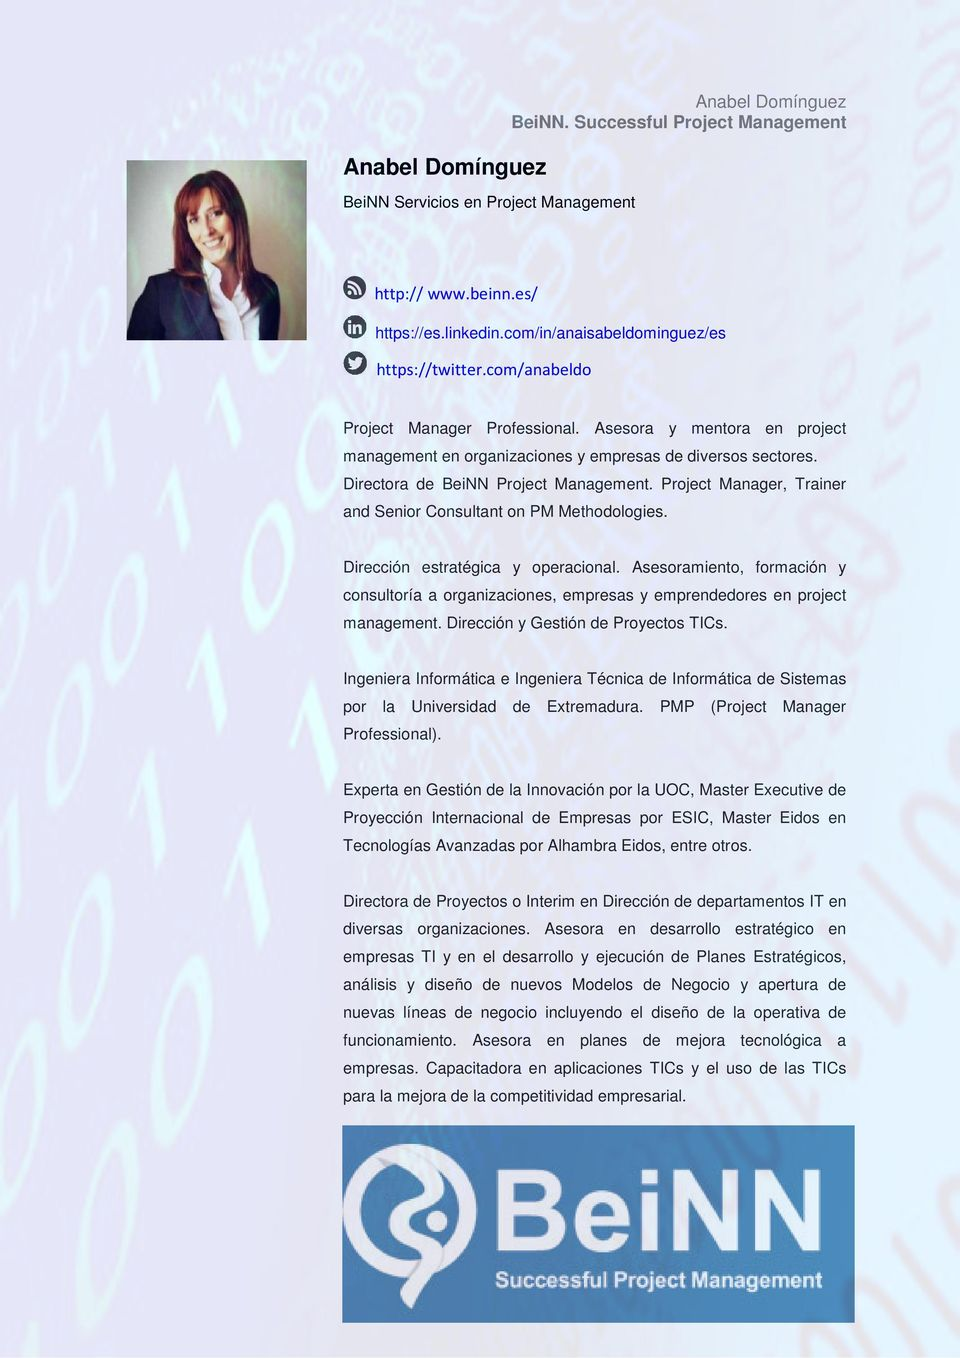 Project Manager, Trainer and Senior Consultant on PM Methodologies. Dirección estratégica y operacional.